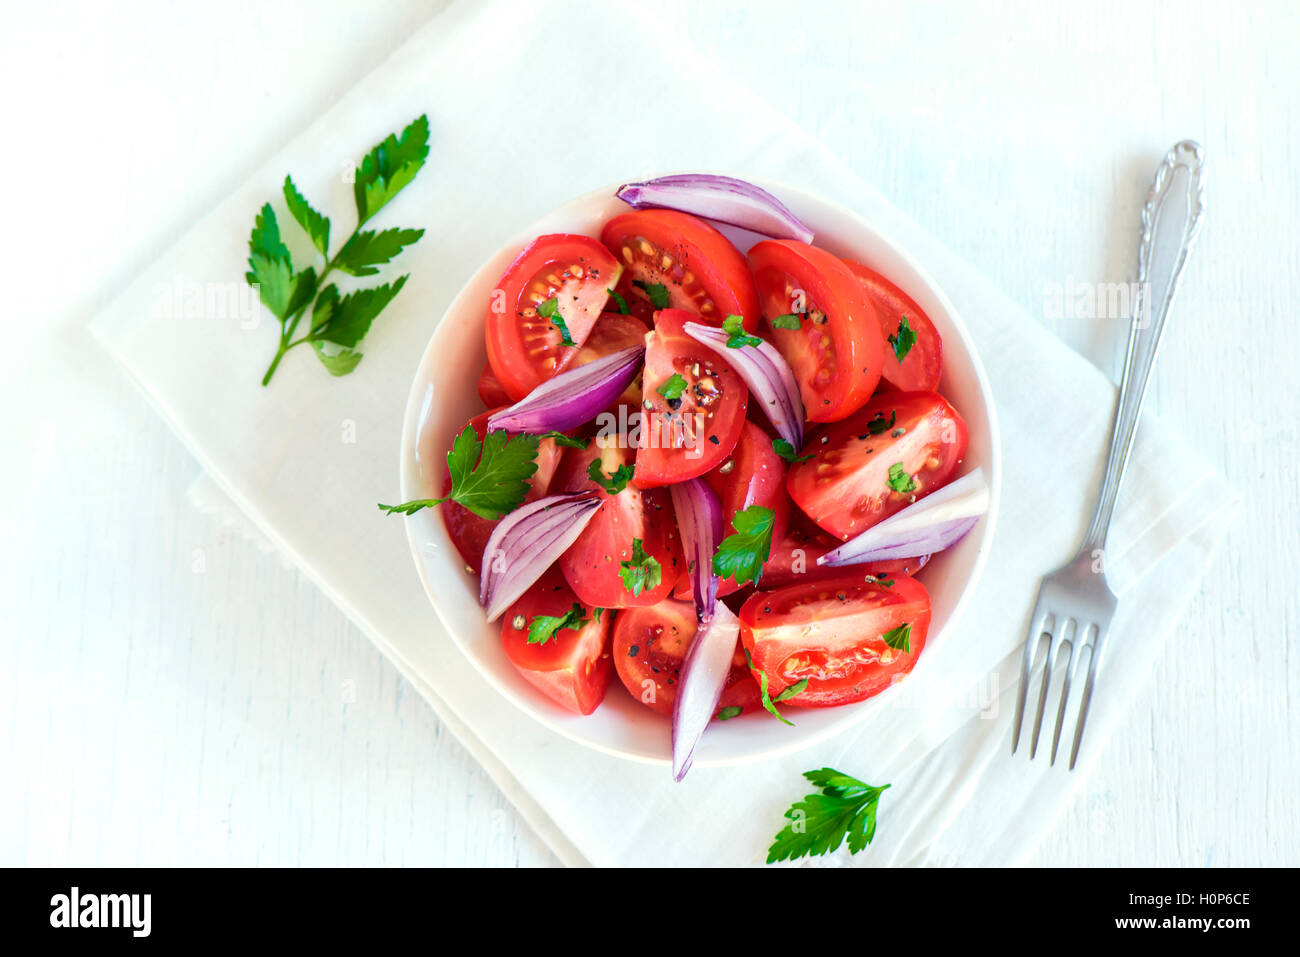 Tomato salad with onion, parsley and black pepper in bowl - healthy vegetarian vegan food appetizer - Stock Image